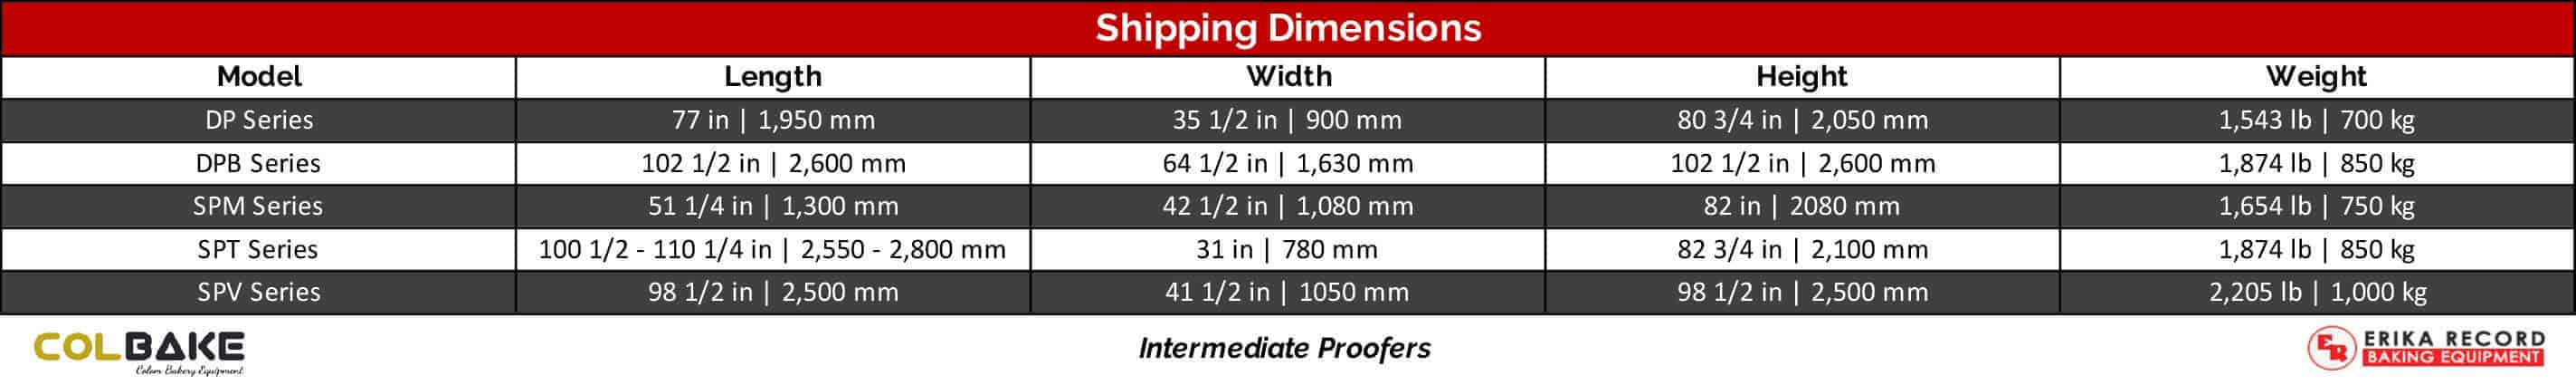 Colbake Intermediate Proofer Systems Shipping Weight & Dimensions